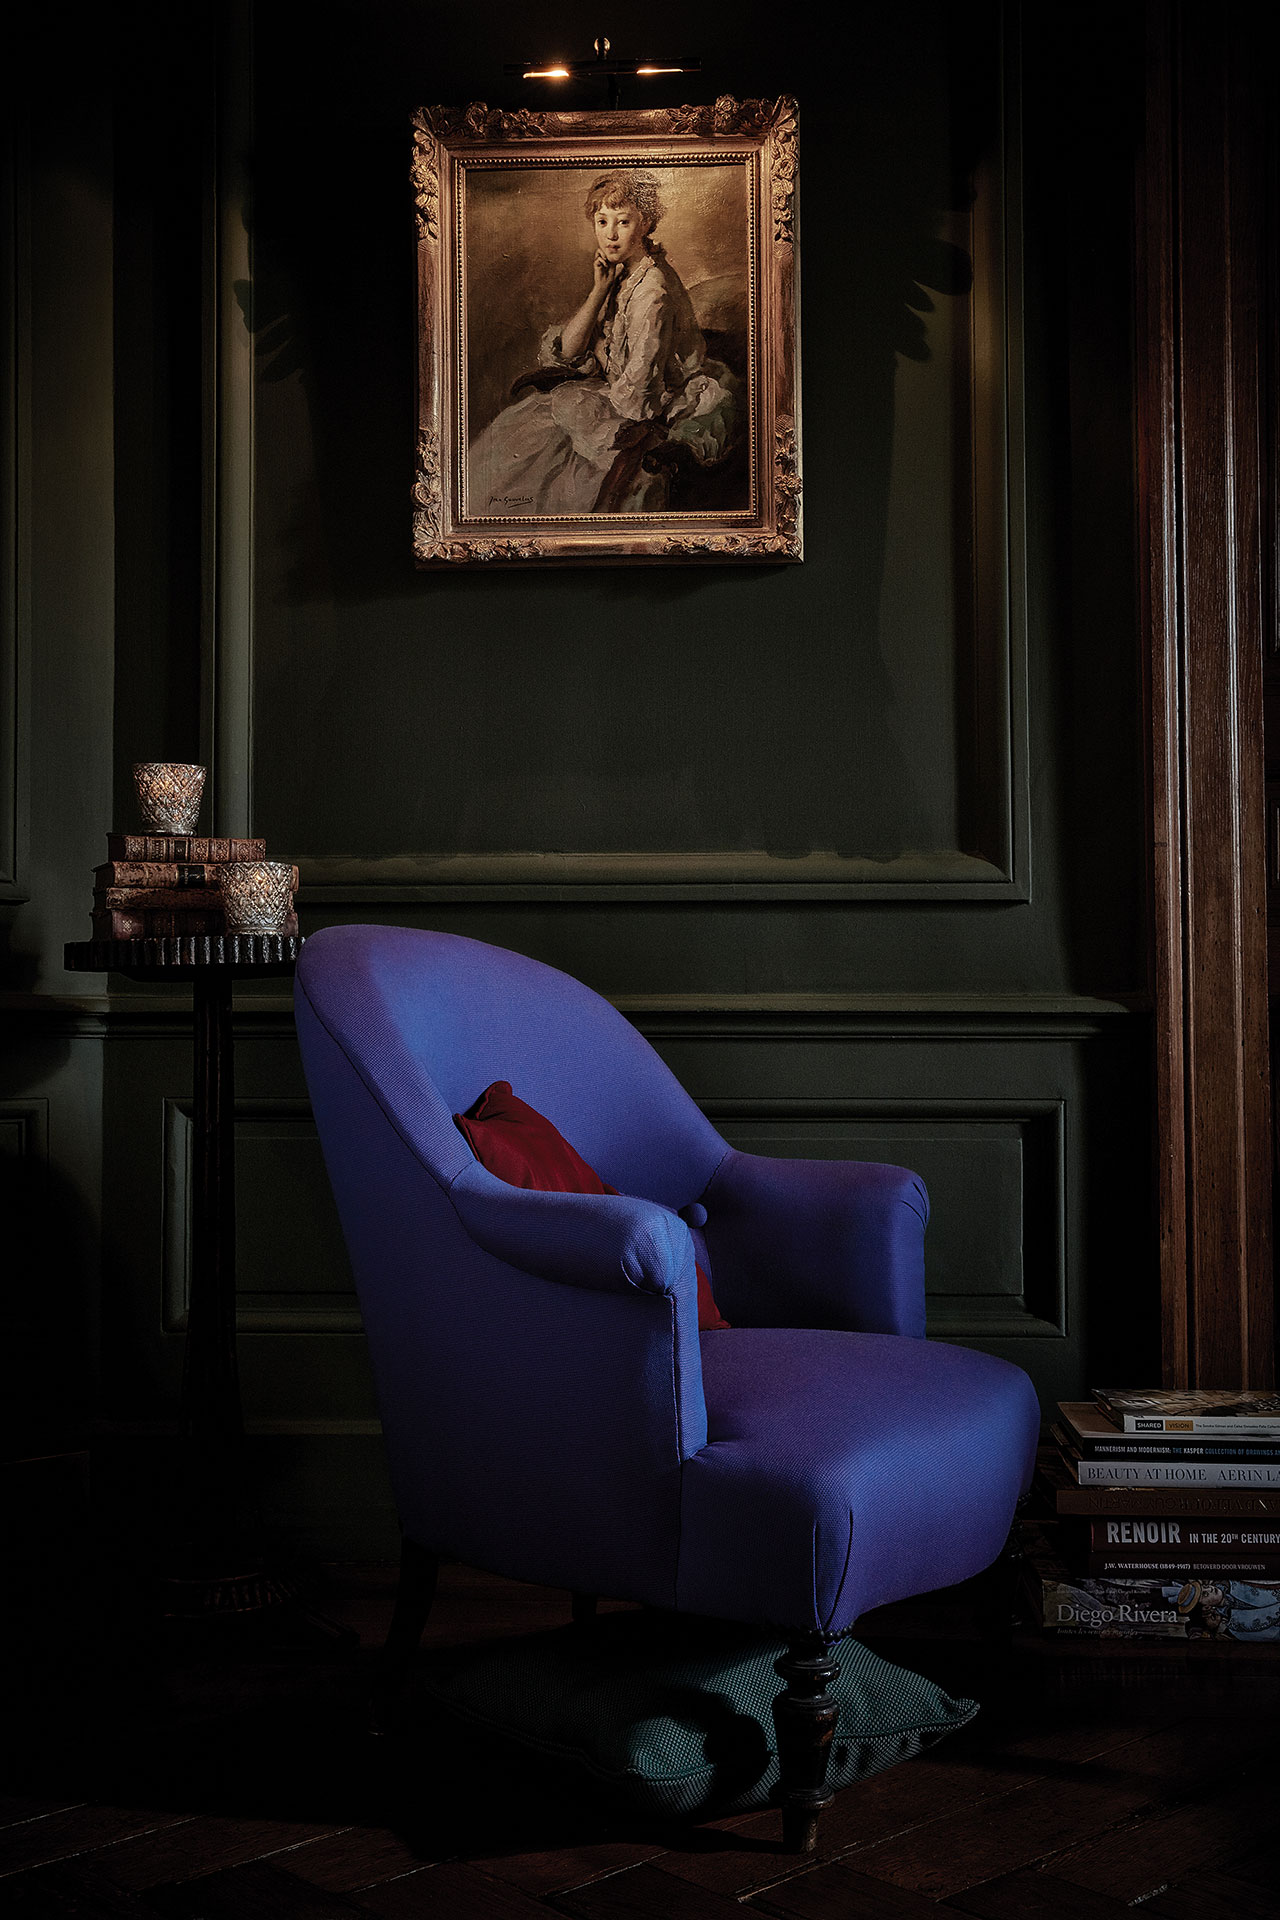 A chair upholstered in purple Sunbrella fabric pops in a dark room.